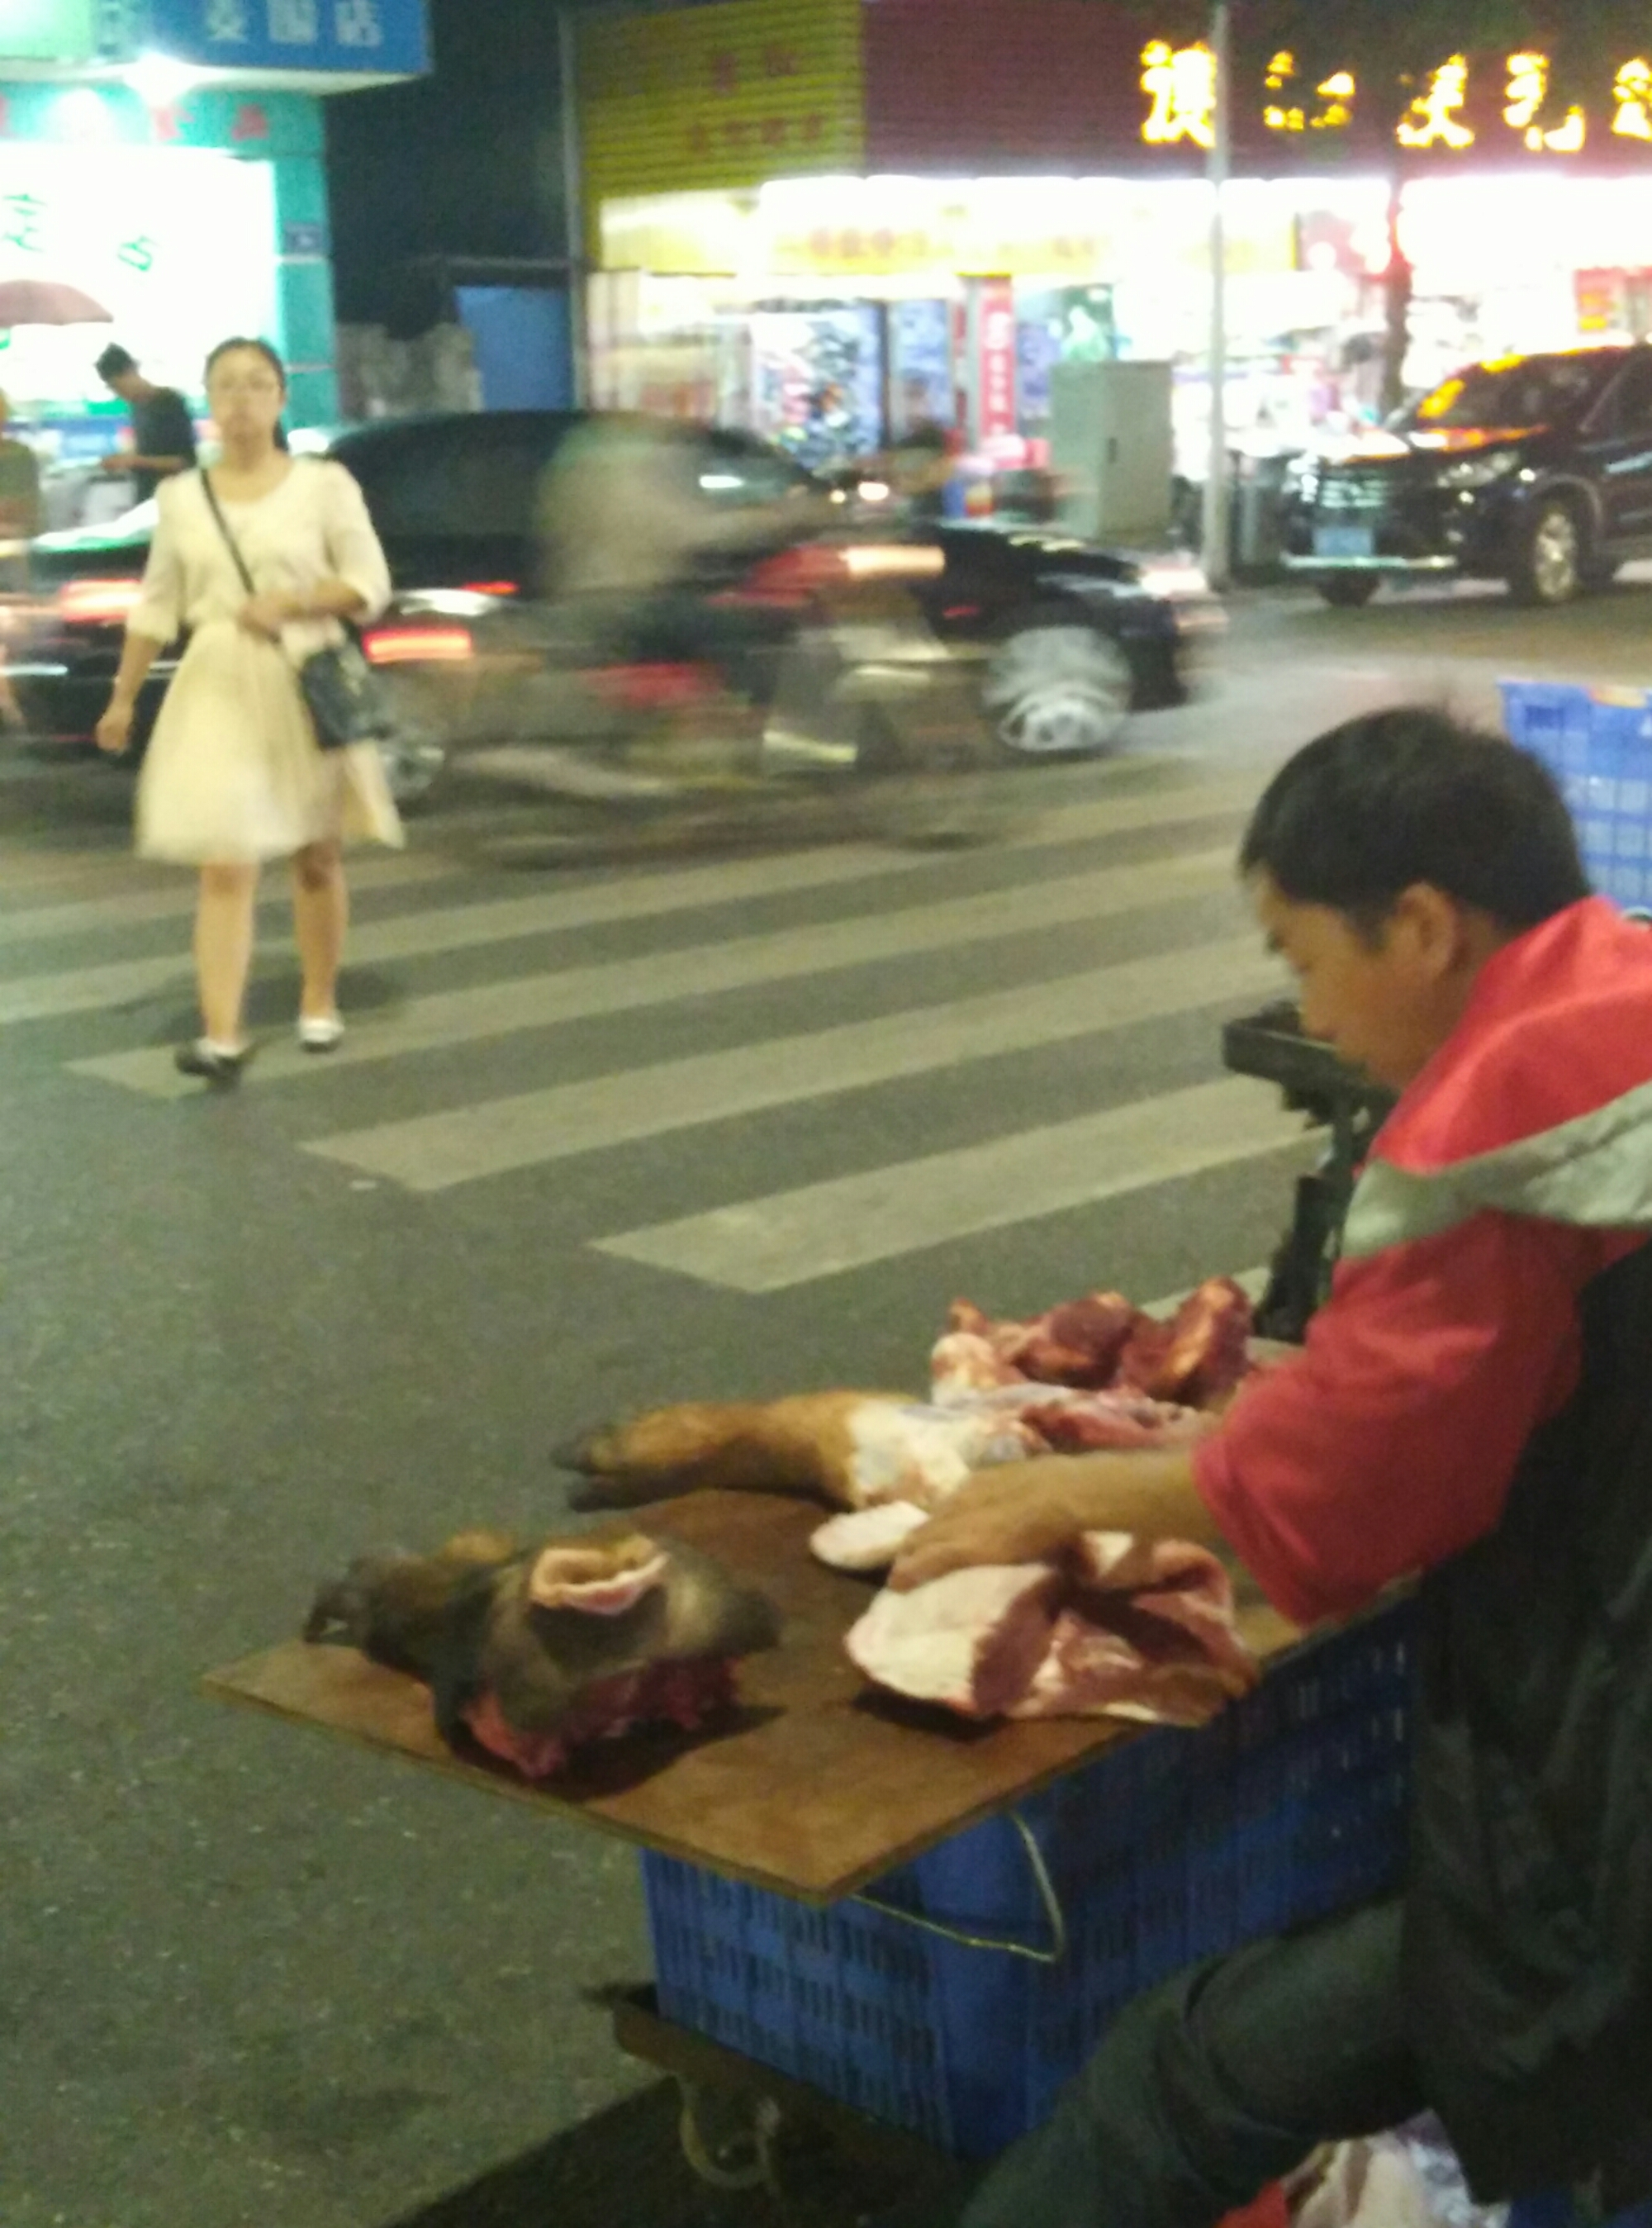 The Roadside Butcher